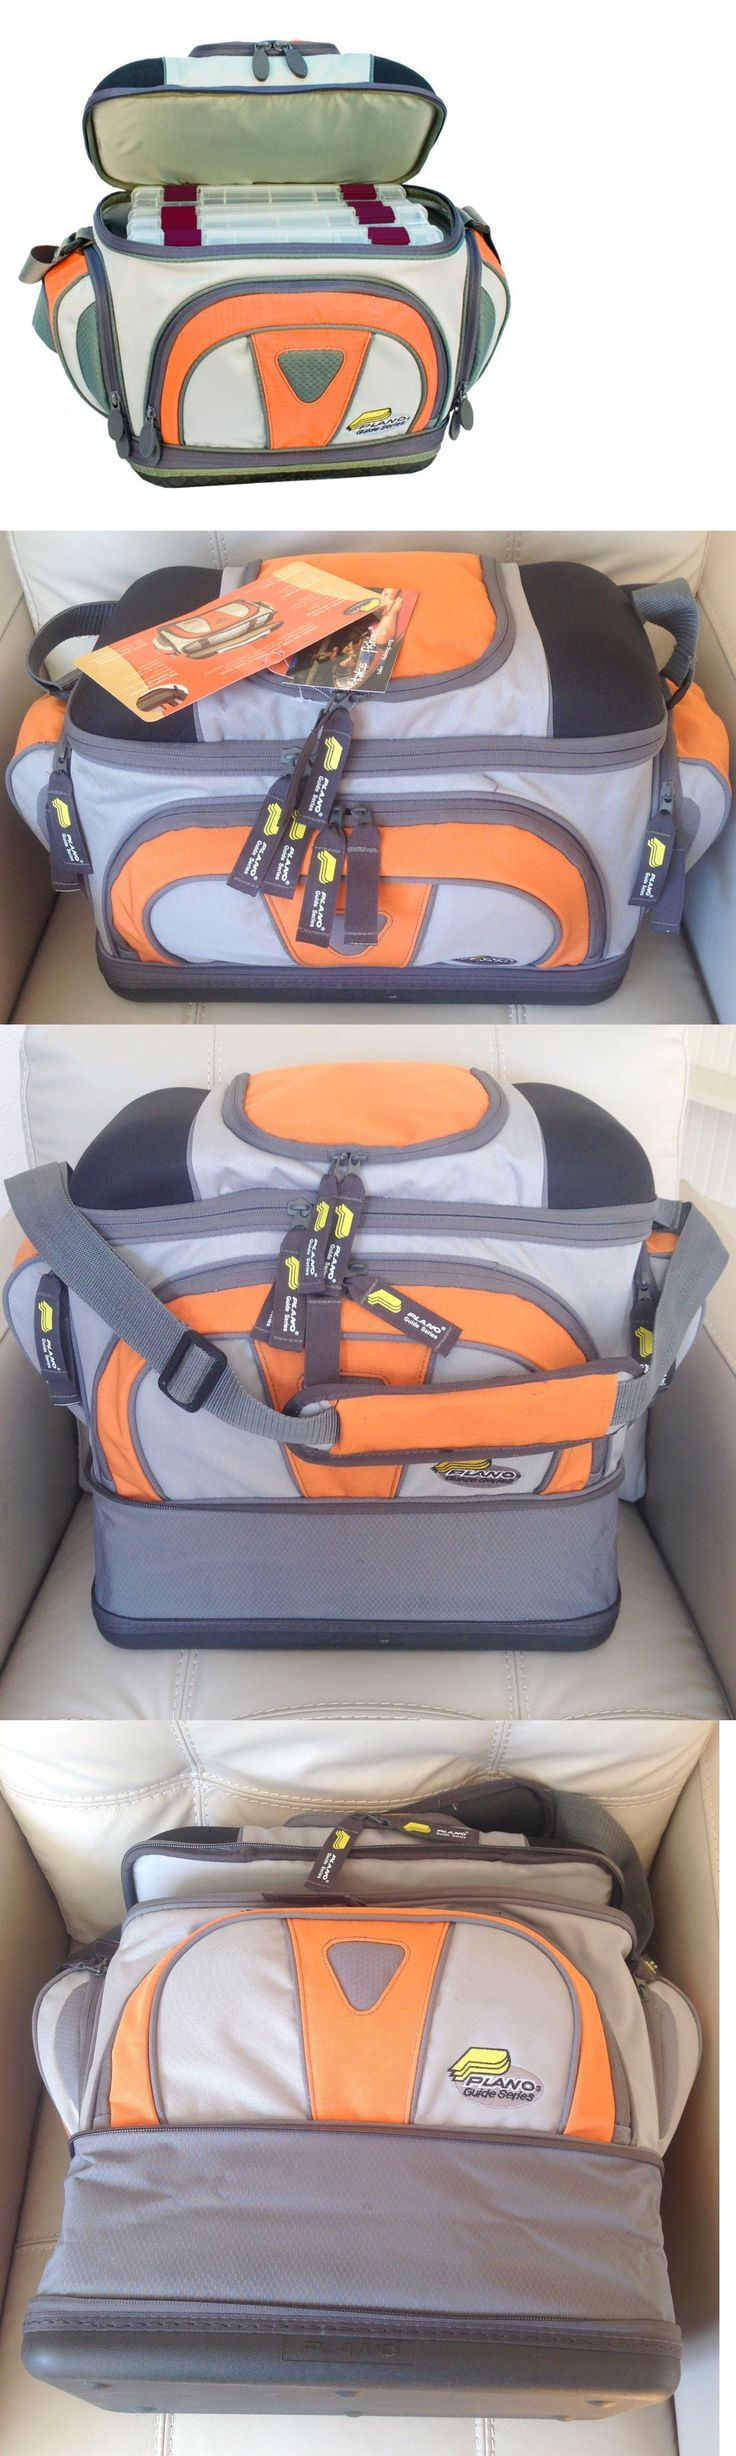 Tackle Boxes and Bags 22696: Plano Guide Series Angler Fishing Tackle Bag With 4 Utility Tray Storage Boxes -> BUY IT NOW ONLY: $32.4 on eBay!